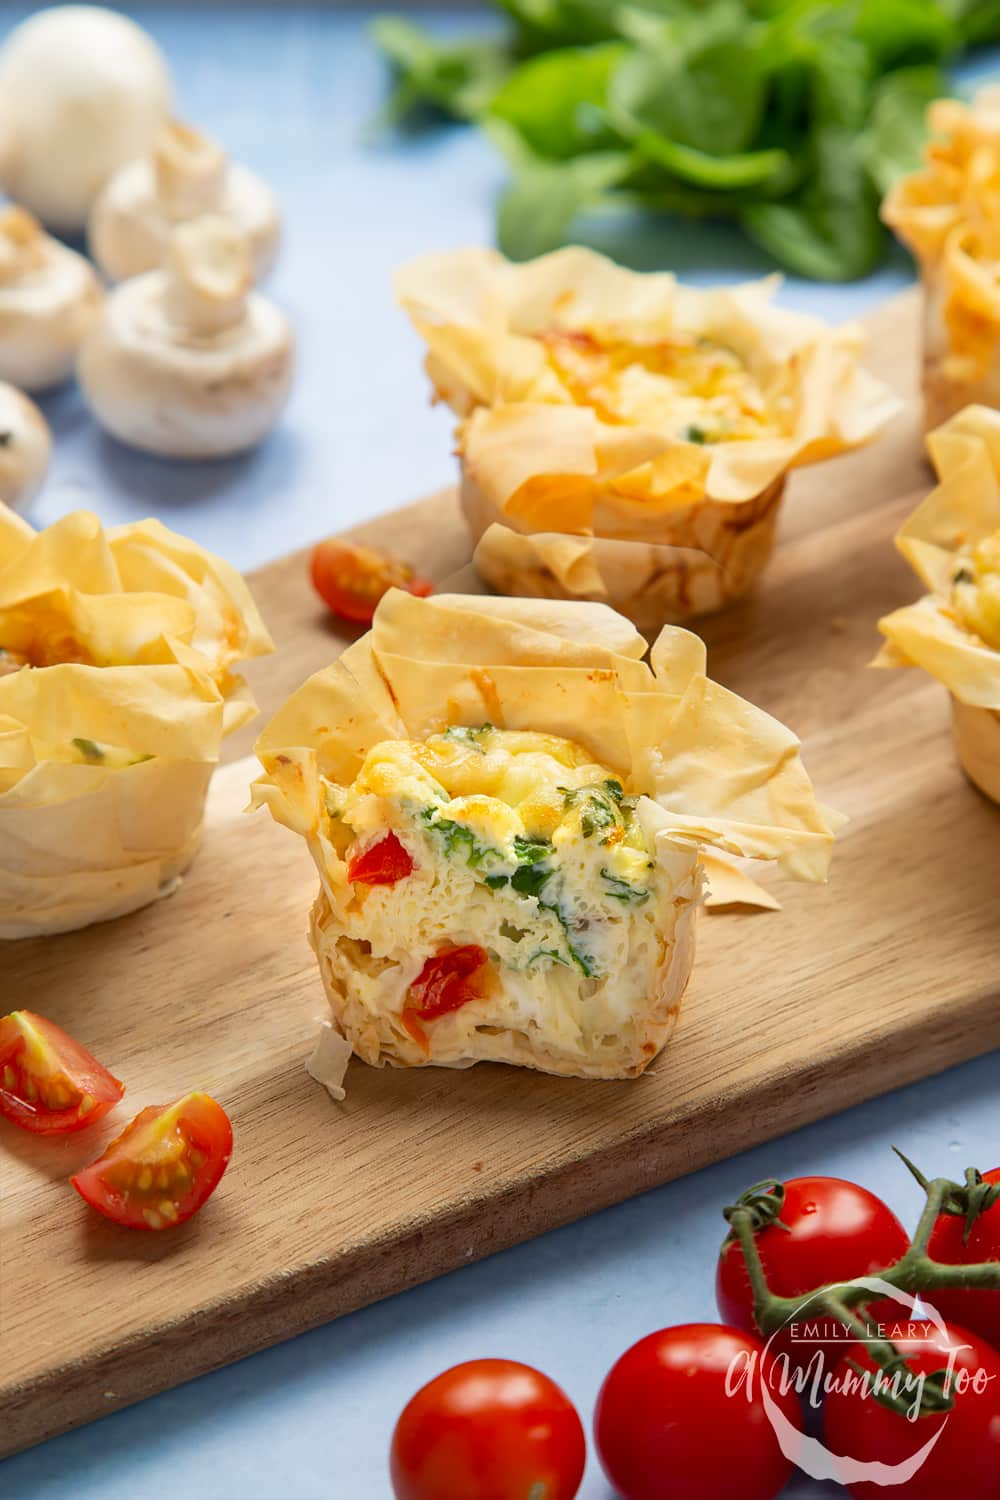 Filo pastry mini quiches - cut open to show the cooked filling.